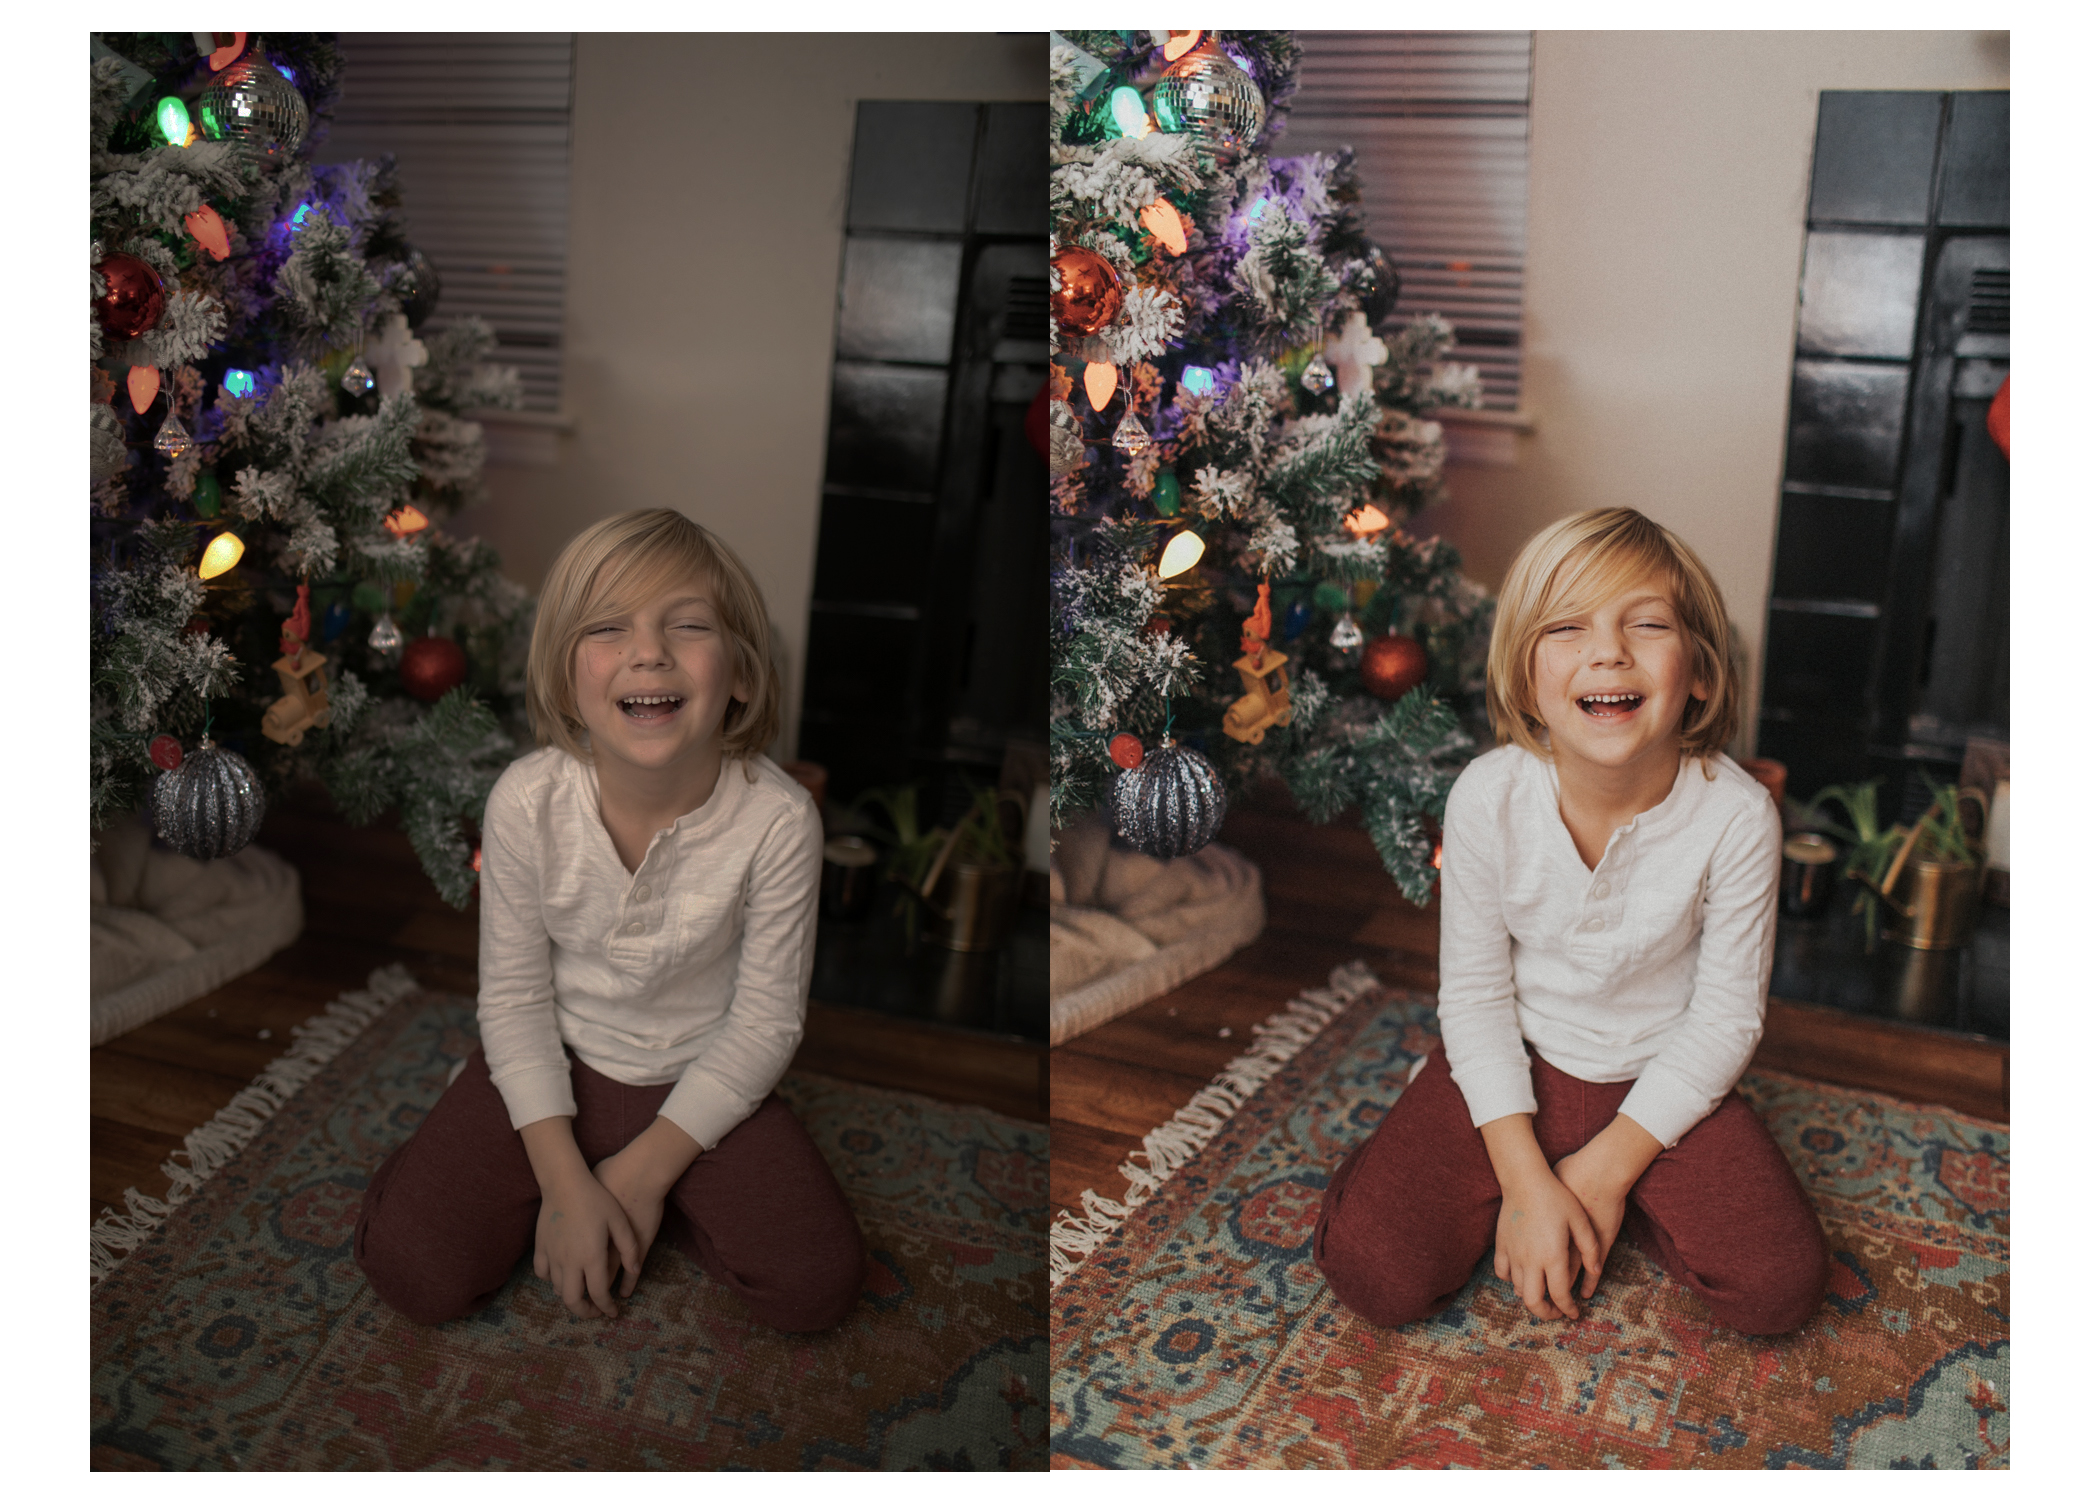 Shot on Canon 5dmk4 with 35mm lens, 1.6, 160 shutter, 400 ISO and 580EX speedlite. LEFT: SOOC. RIGHT: Edited with MEGA